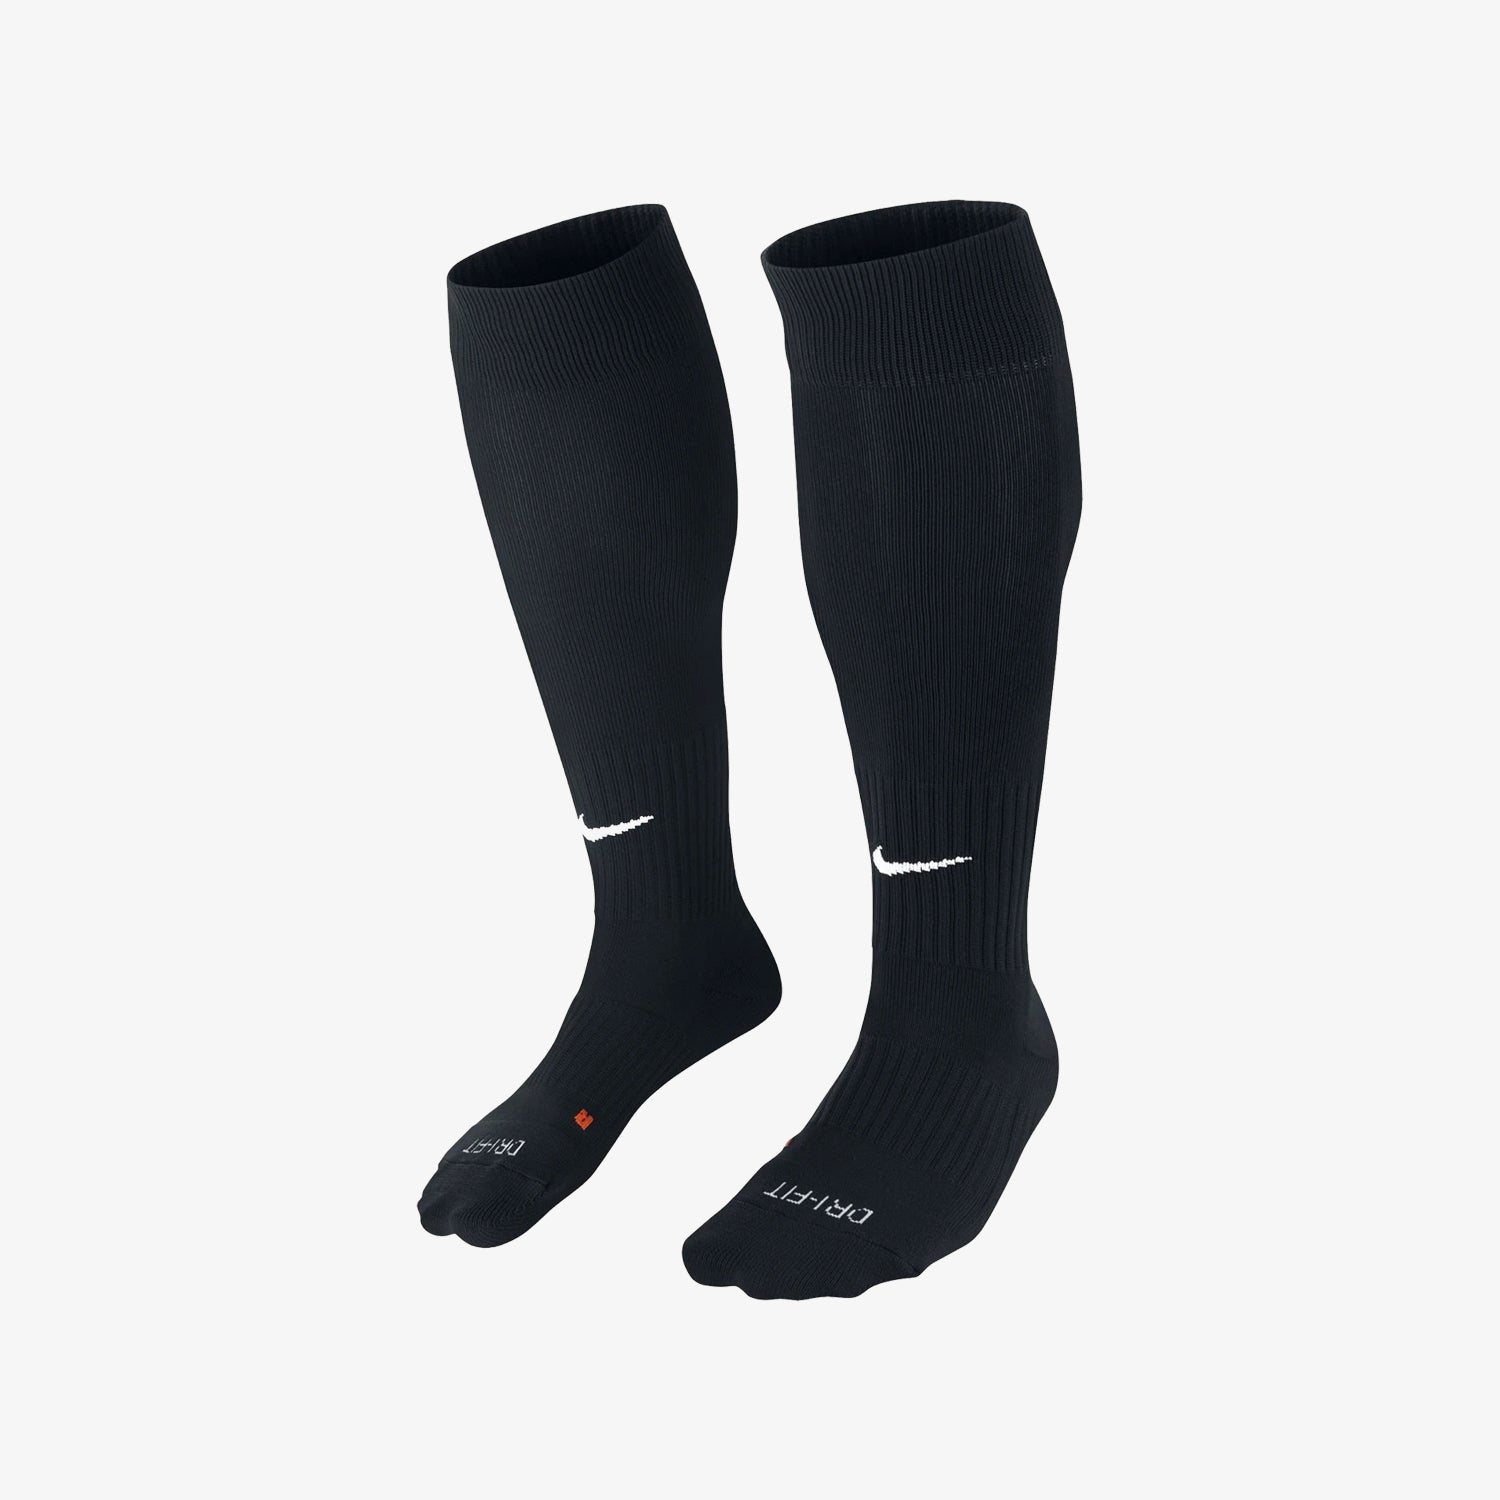 Men's Classic II Sock - Black/White